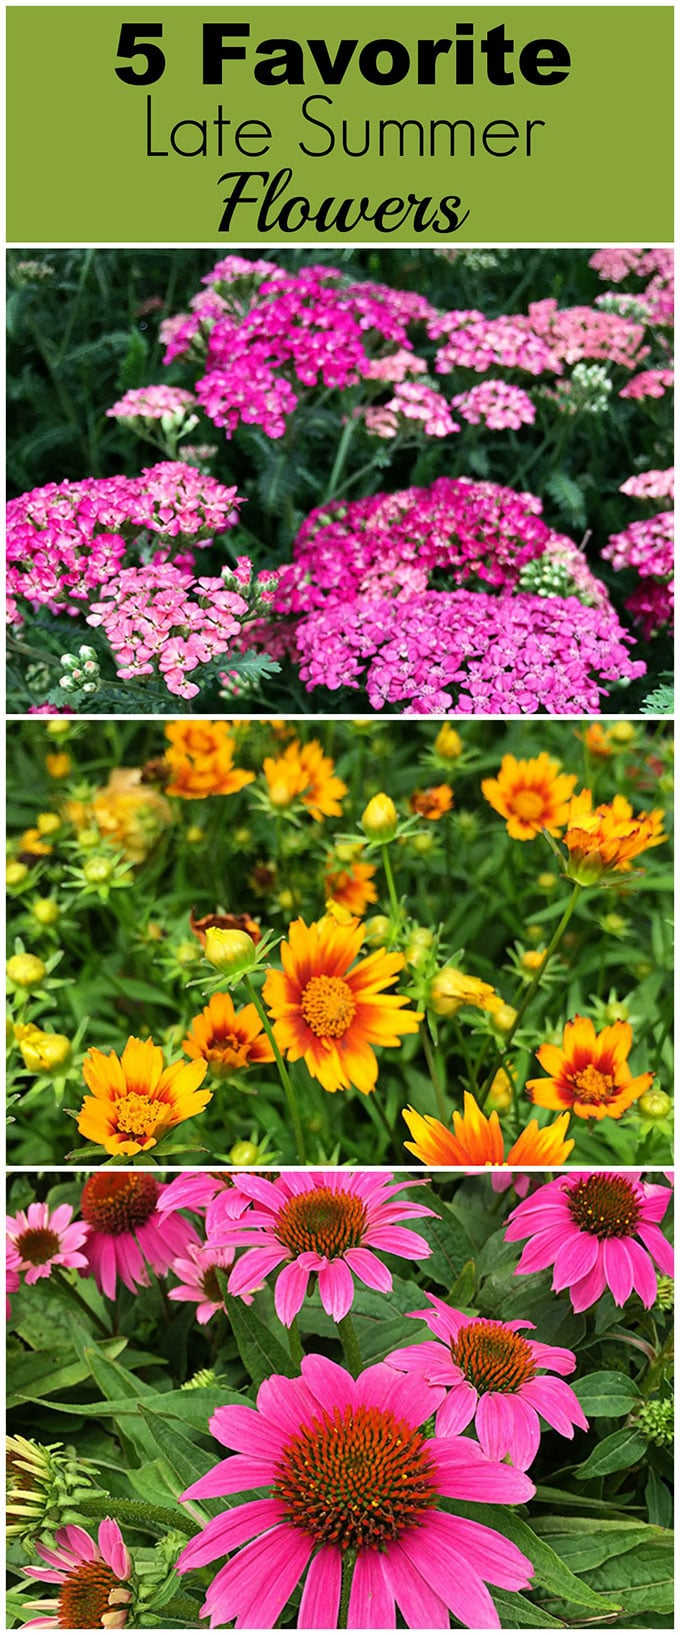 Bring color to your garden with these late summer flowers. Let's face it, by mid-July a lot of your annuals have gotten all leggy and even if they're not dead yet, they're not looking as spiffy as they did in May.